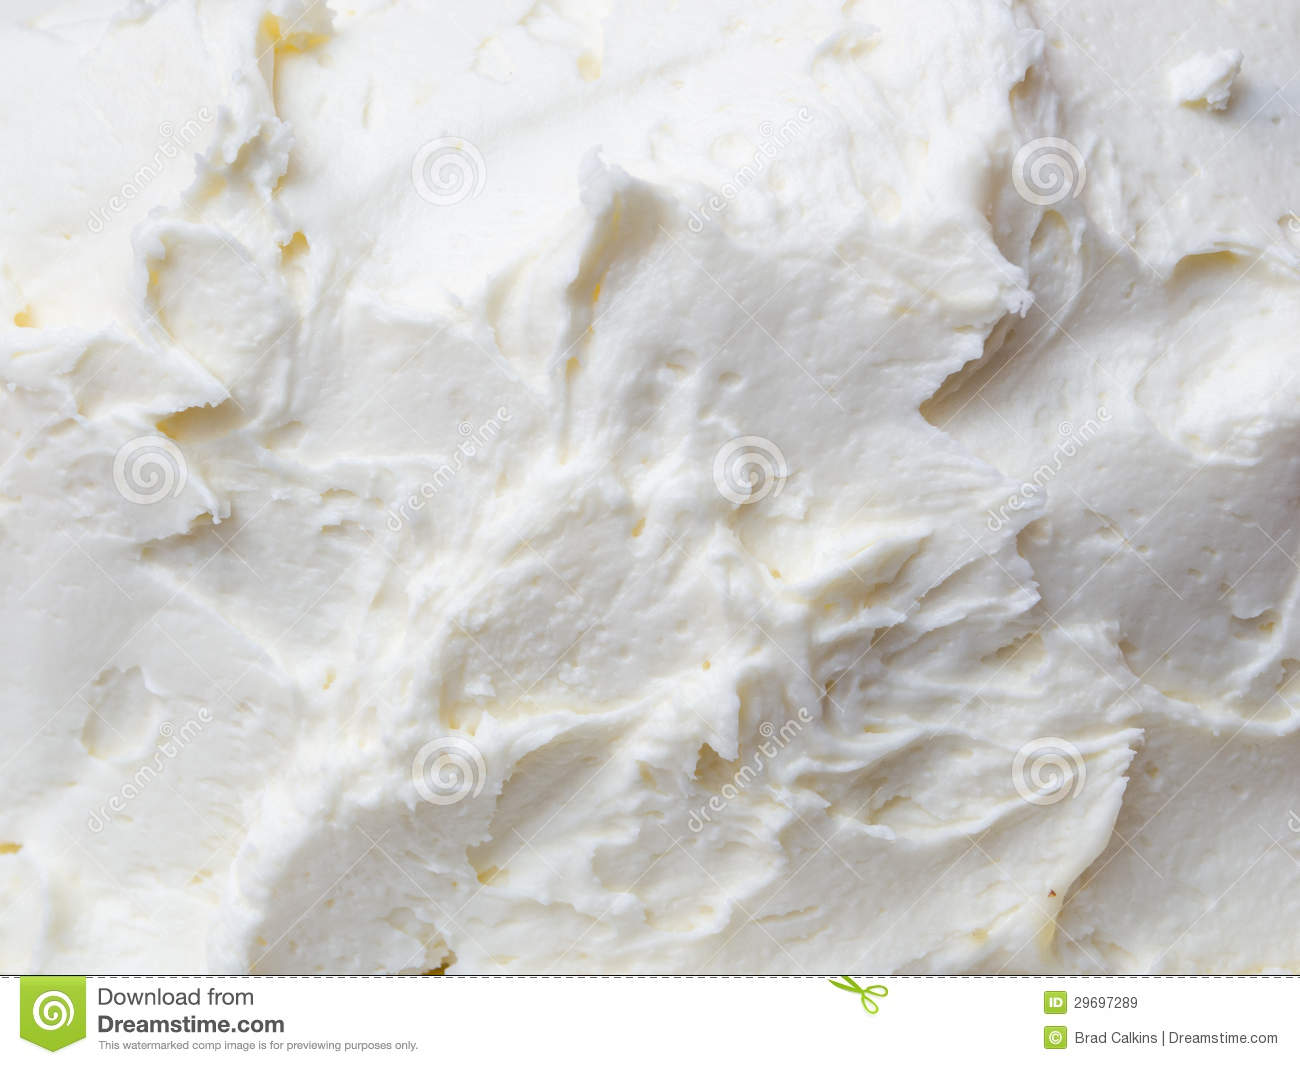 Lemon Icing Background Royalty Free Stock Images - Image: 29697289